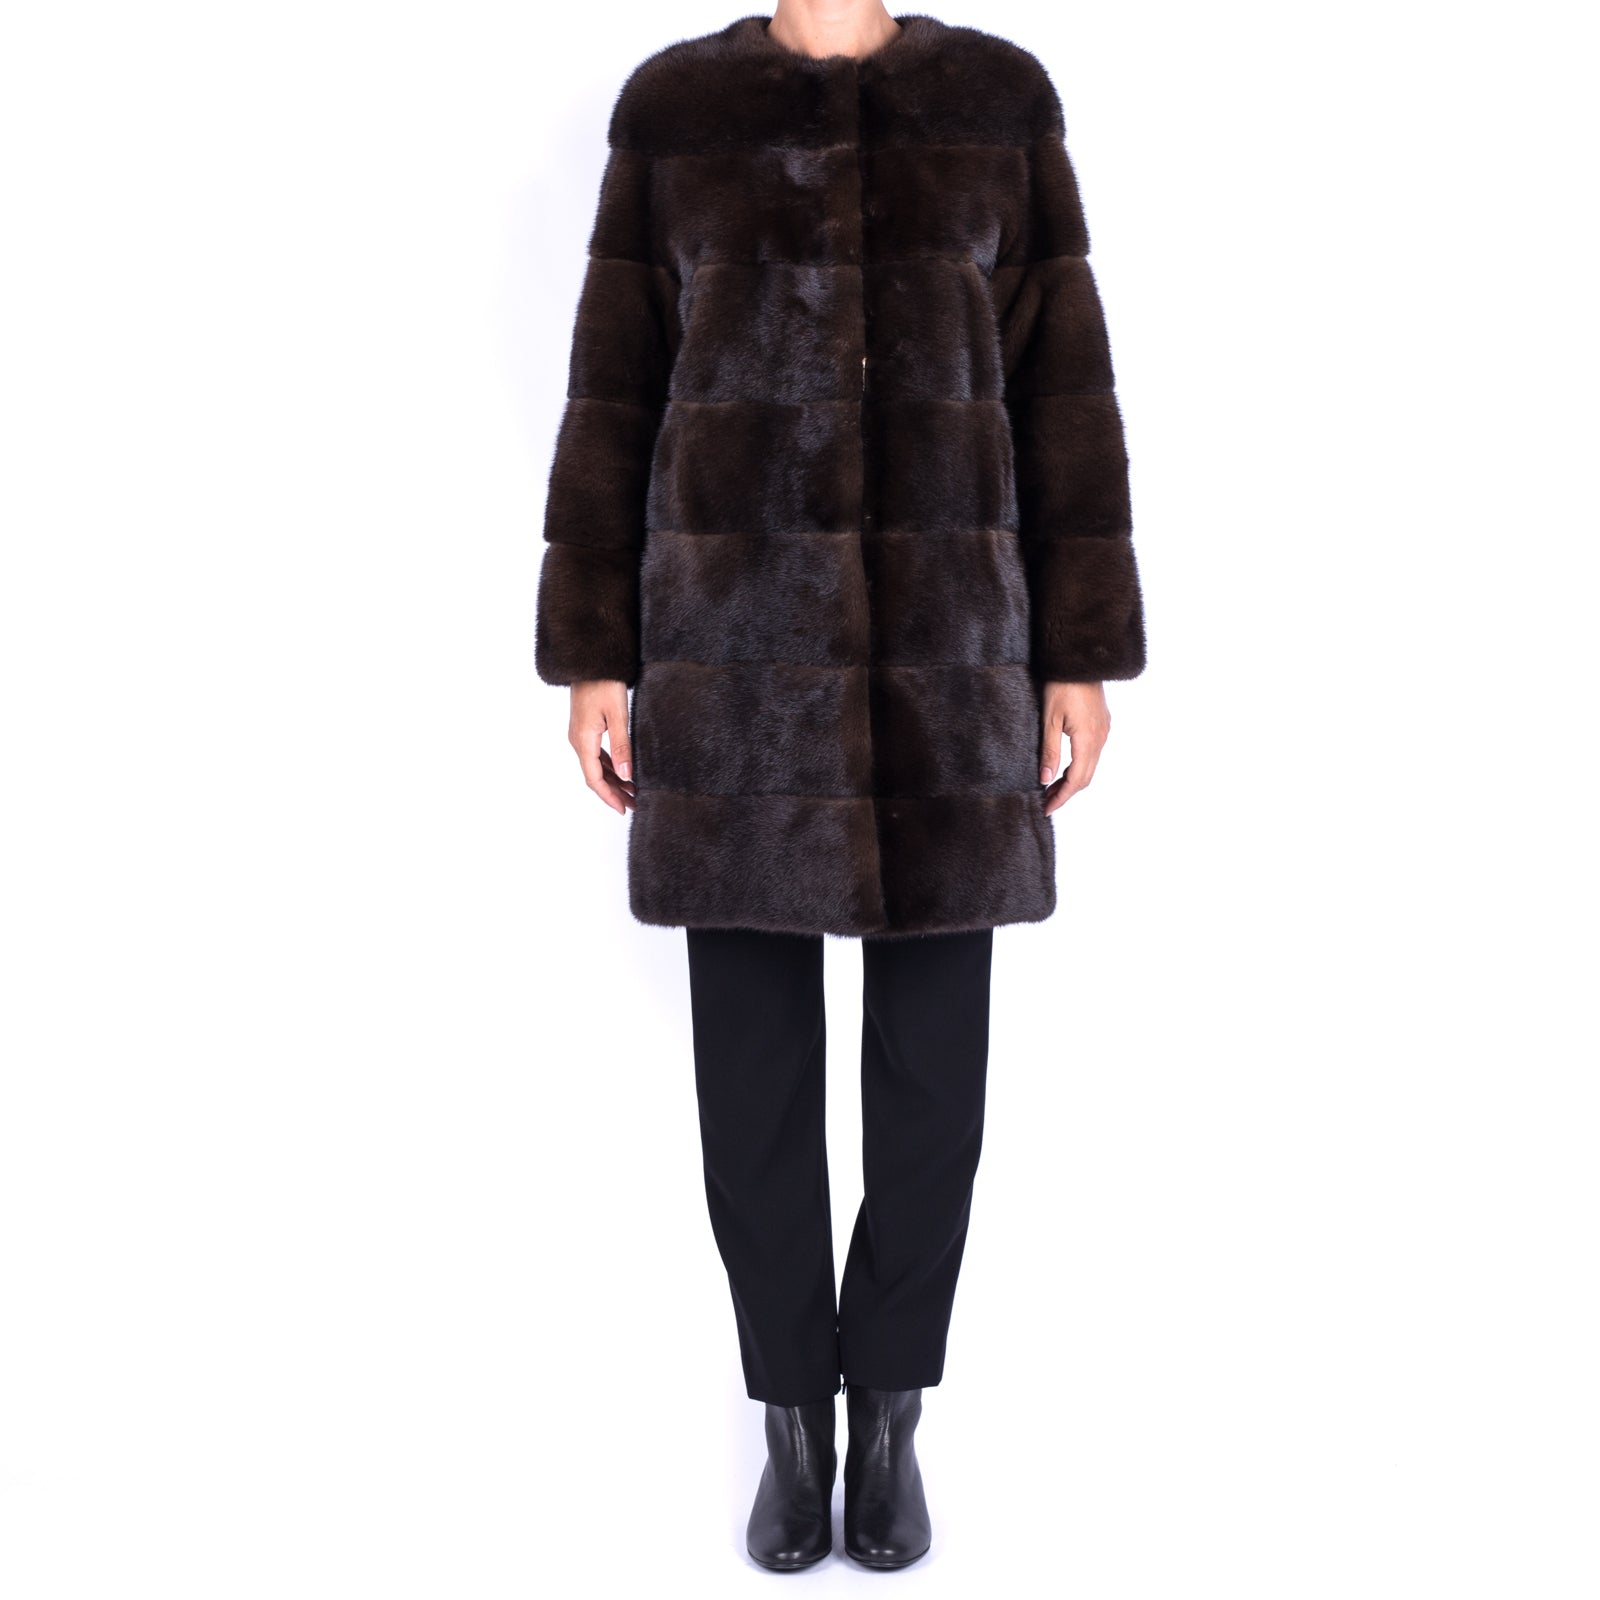 Mink Fur Coat-BORRELLI-SHOPATVOI.COM - Luxury Fashion Designer